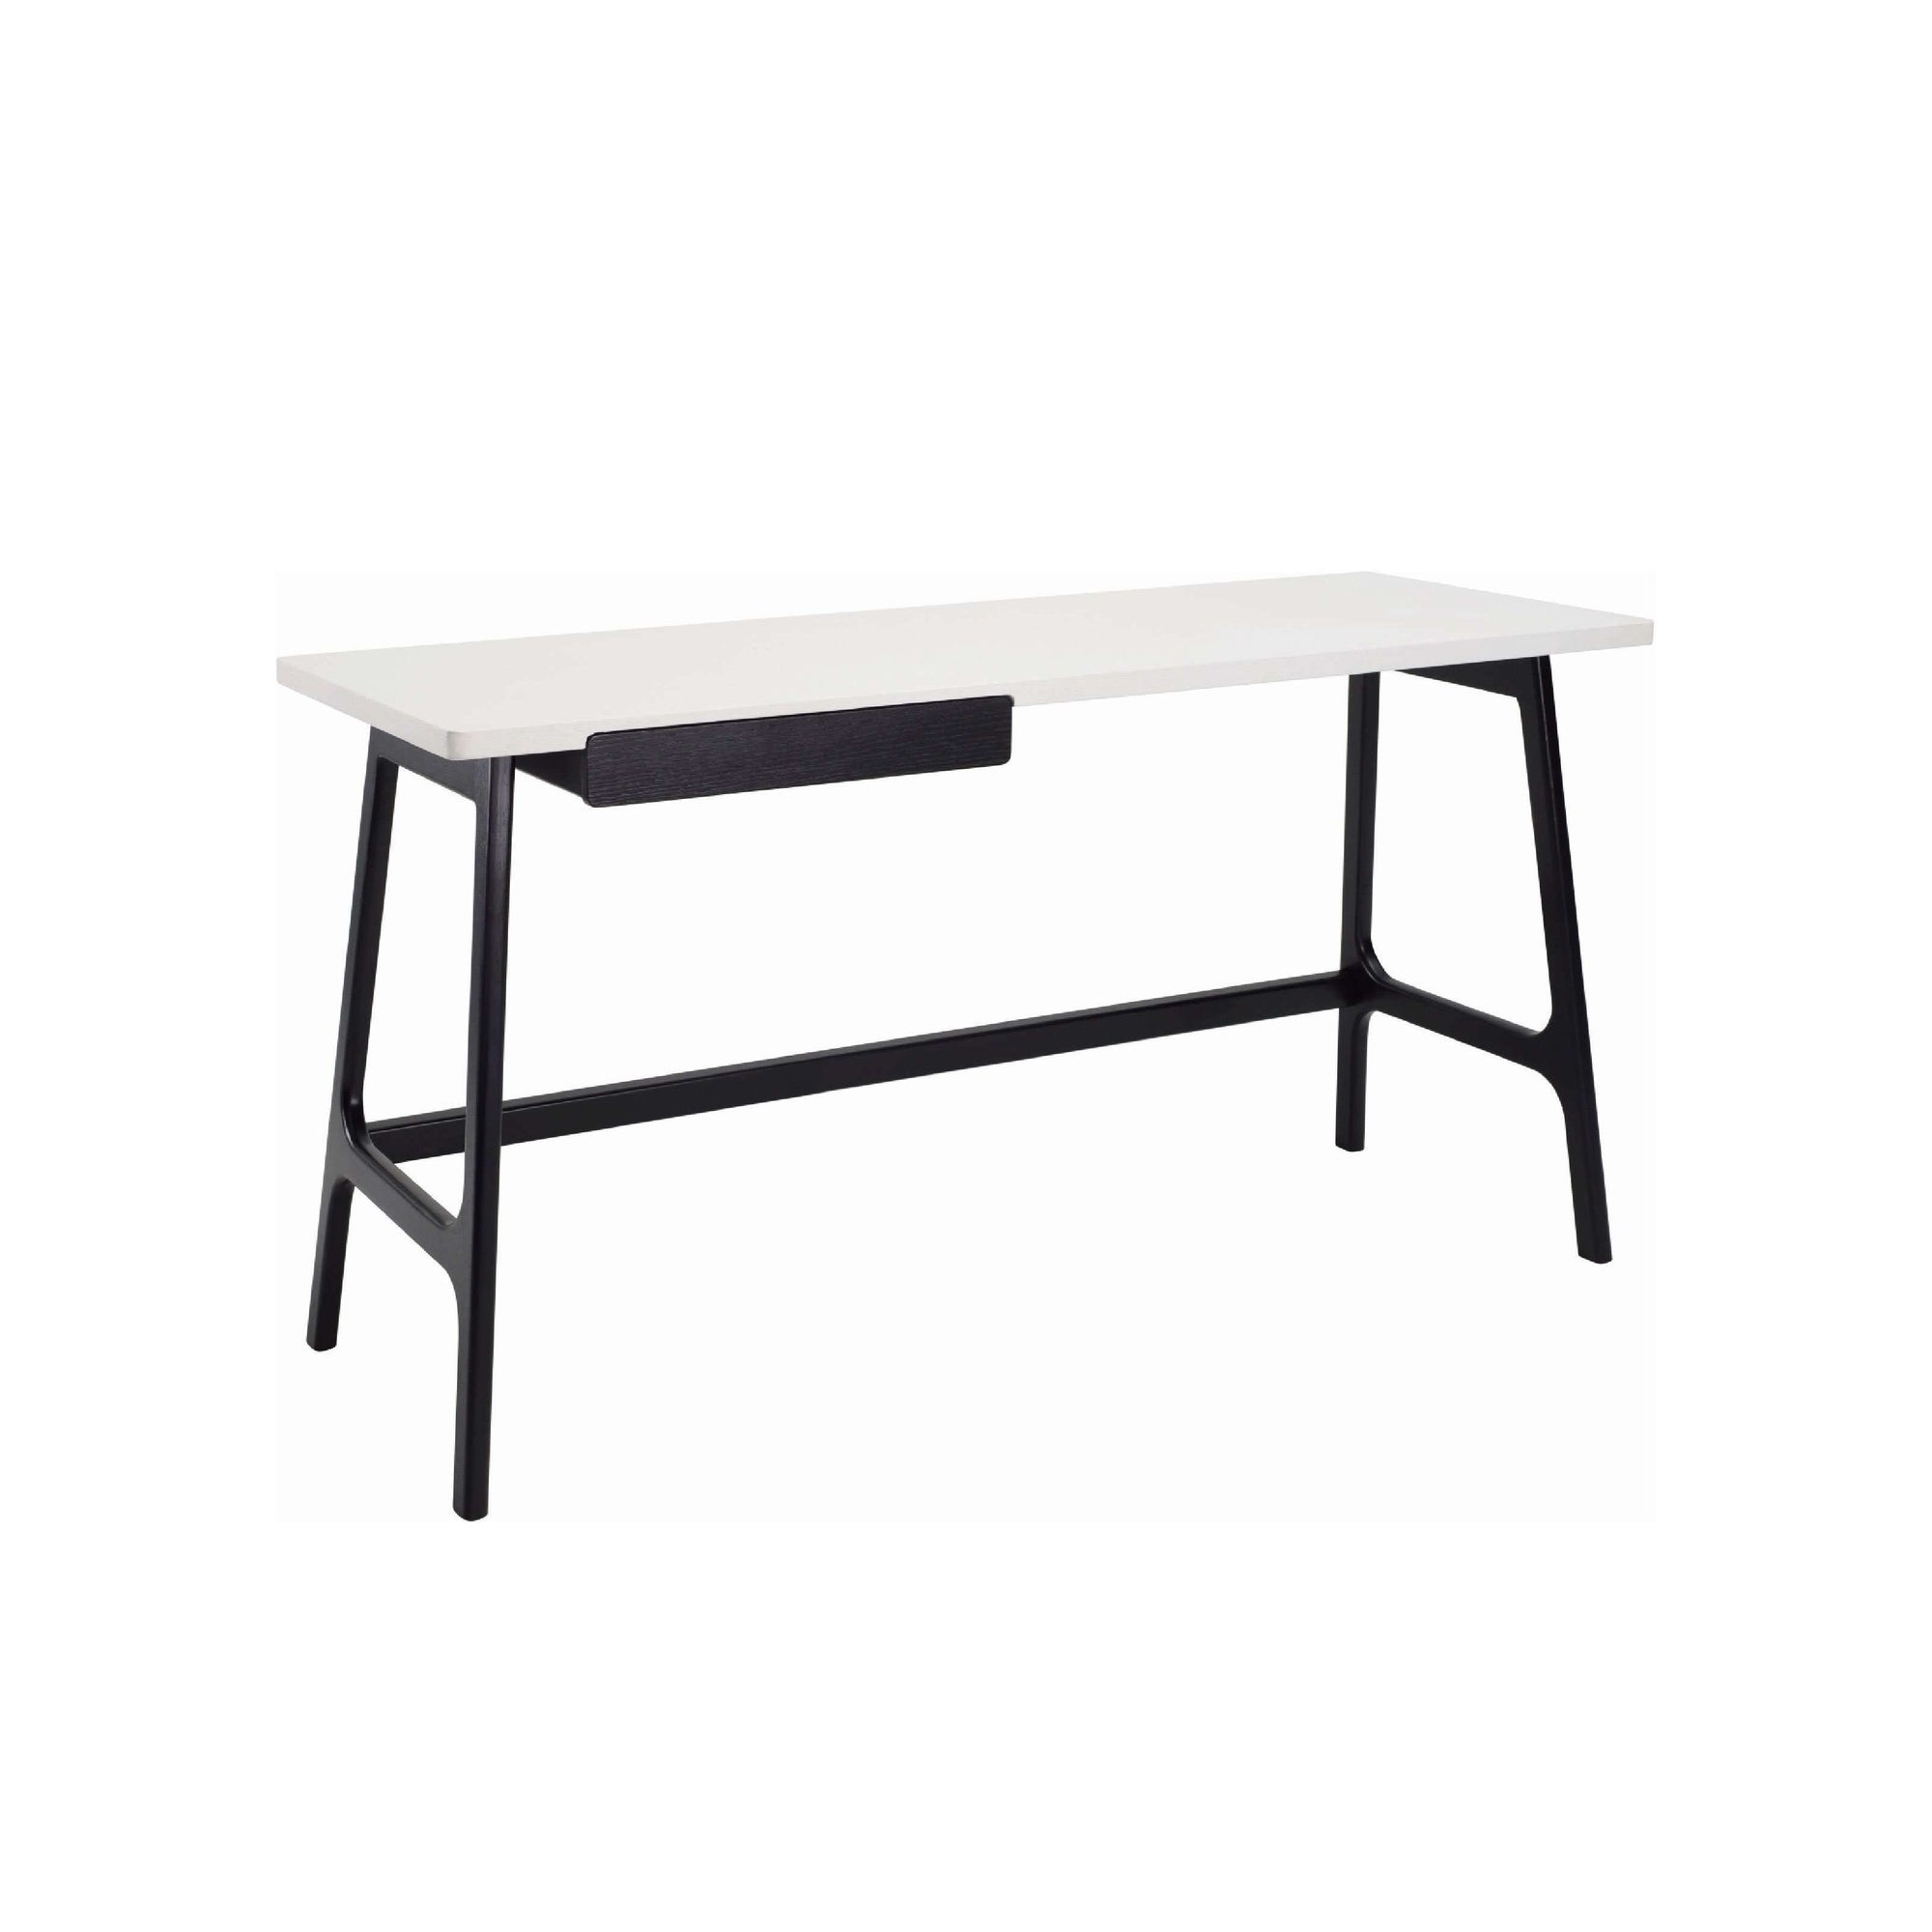 MOREY Working Desk In Black Colour Leg And White Lacquered Top, Black Ash Veneer Drawer